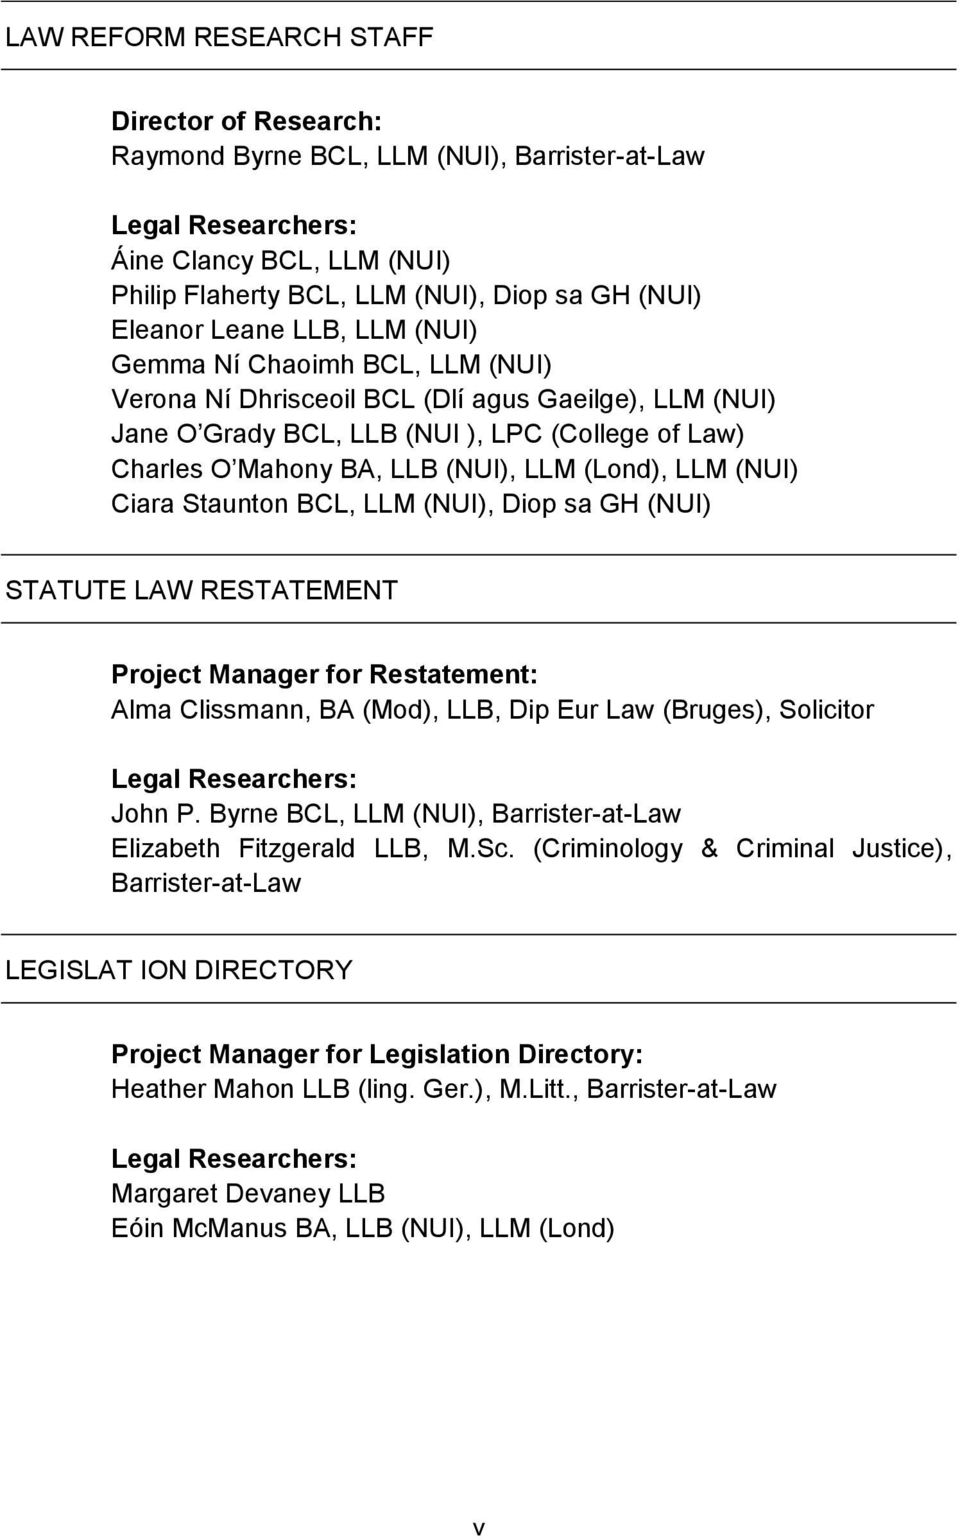 (Lond), LLM (NUI) Ciara Staunton BCL, LLM (NUI), Diop sa GH (NUI) STATUTE LAW RESTATEMENT Project Manager for Restatement: Alma Clissmann, BA (Mod), LLB, Dip Eur Law (Bruges), Solicitor Legal